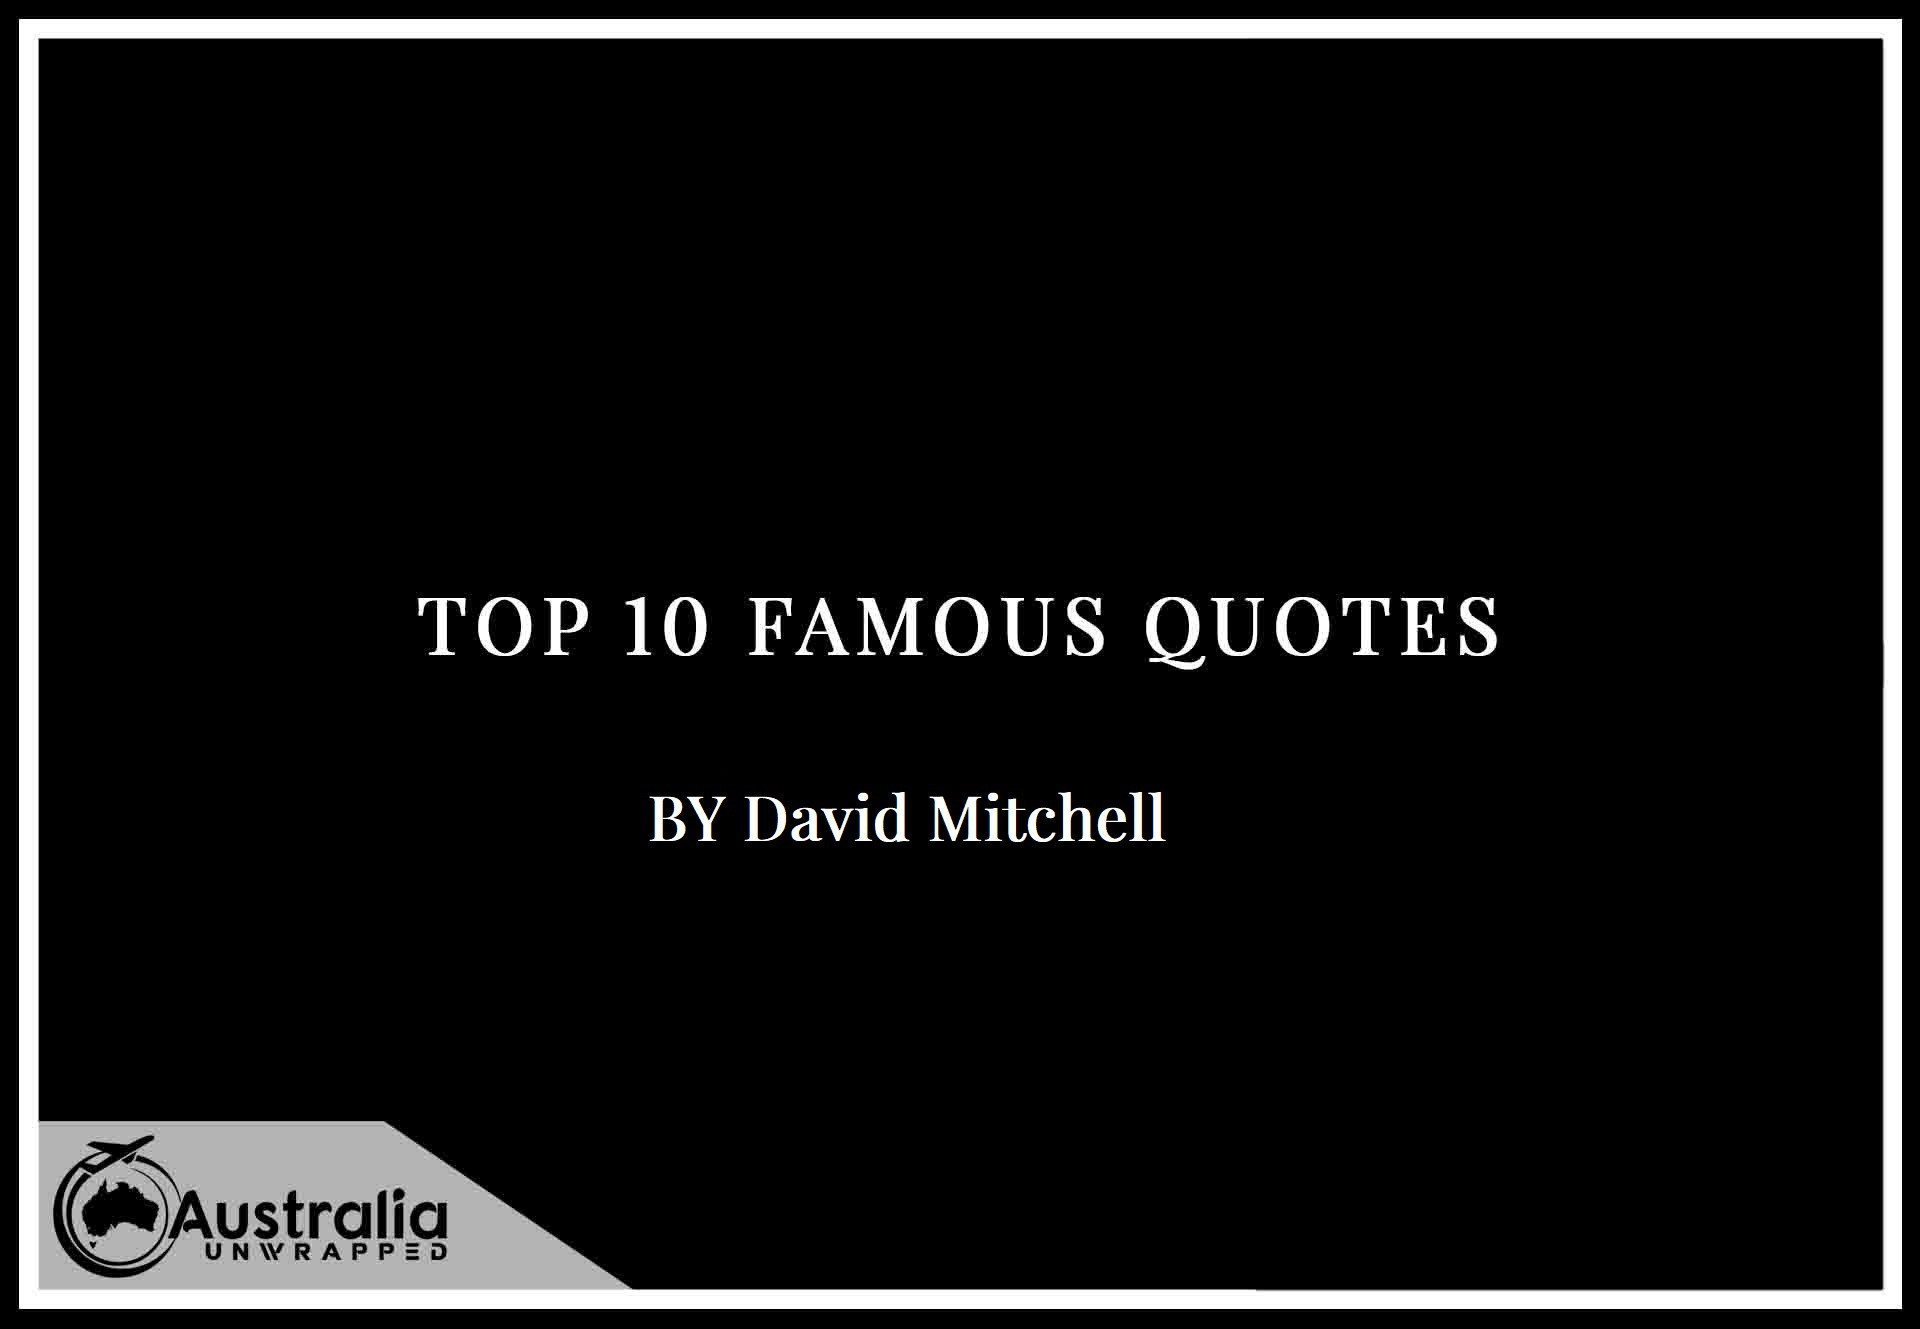 Top 10 Famous Quotes by Author David Mitchell